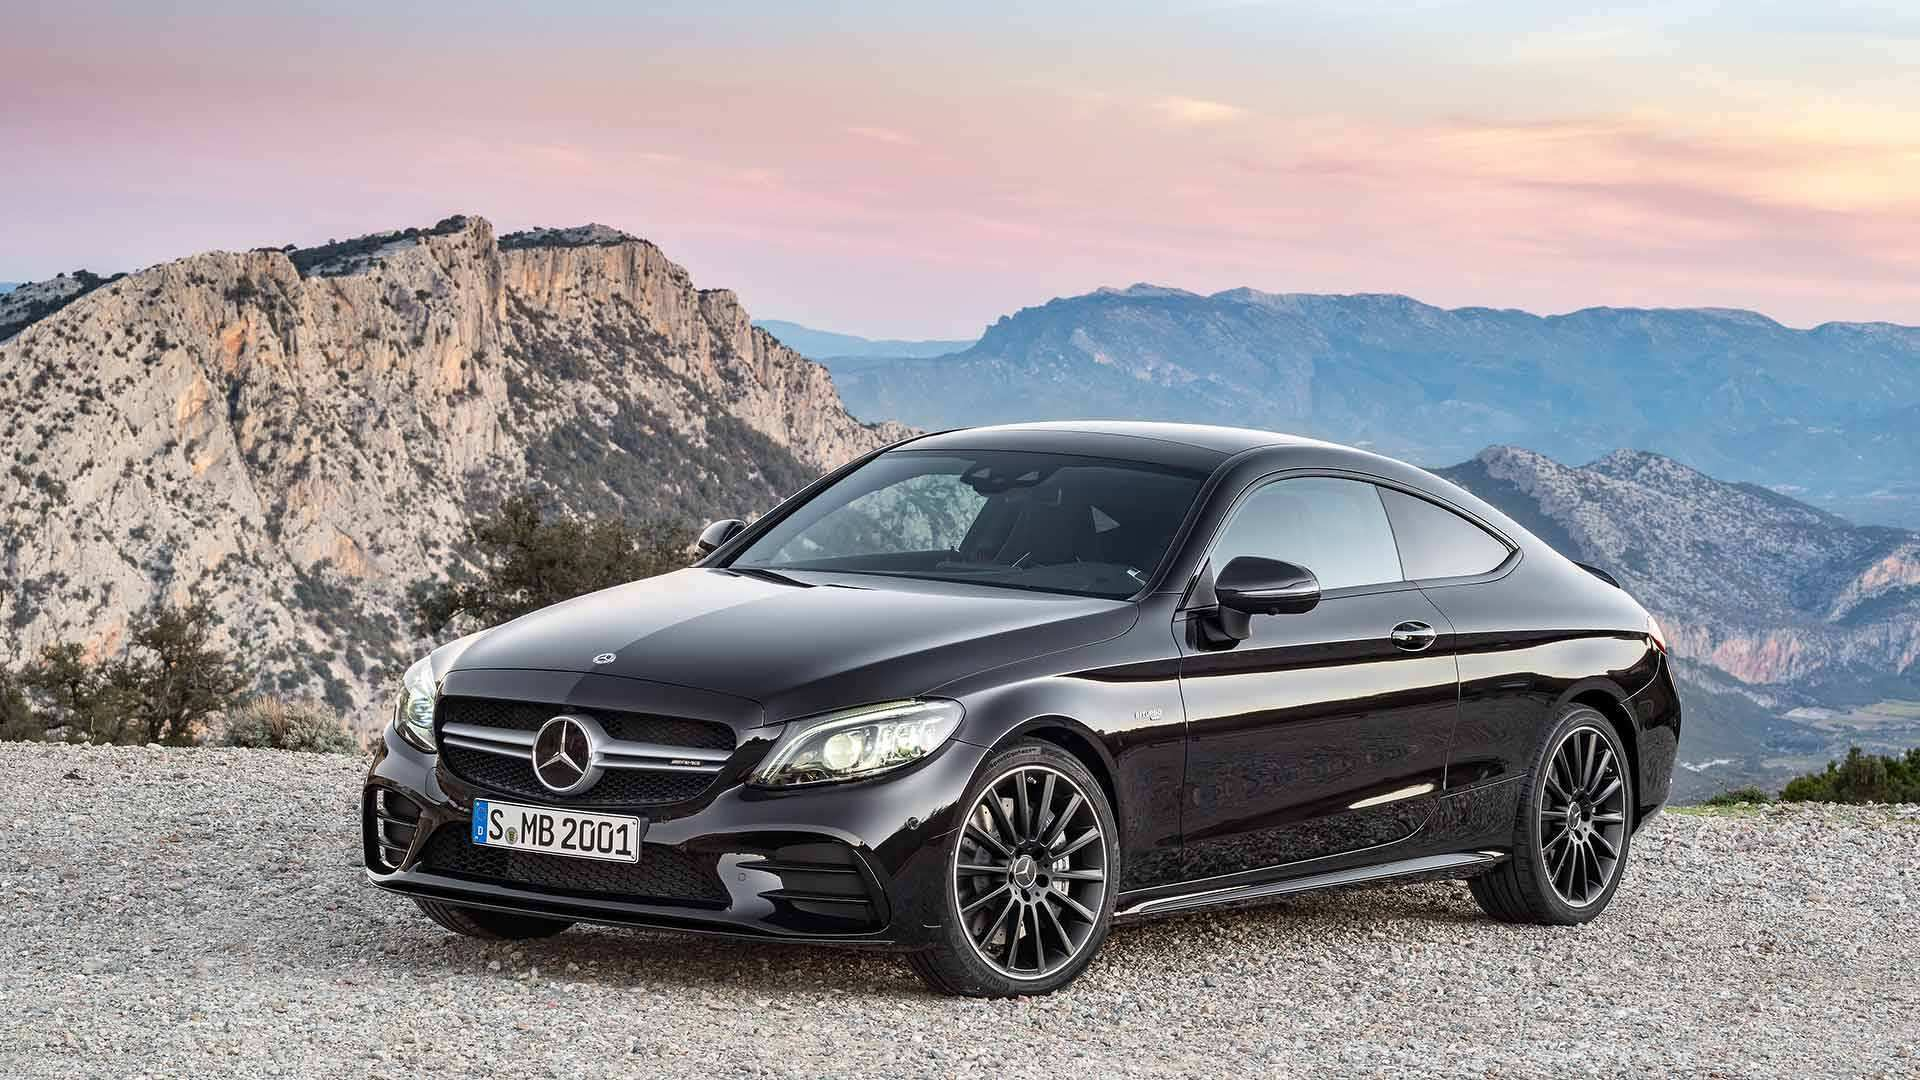 85 All New Mercedes C Class Coupe 2019 History with Mercedes C Class Coupe 2019